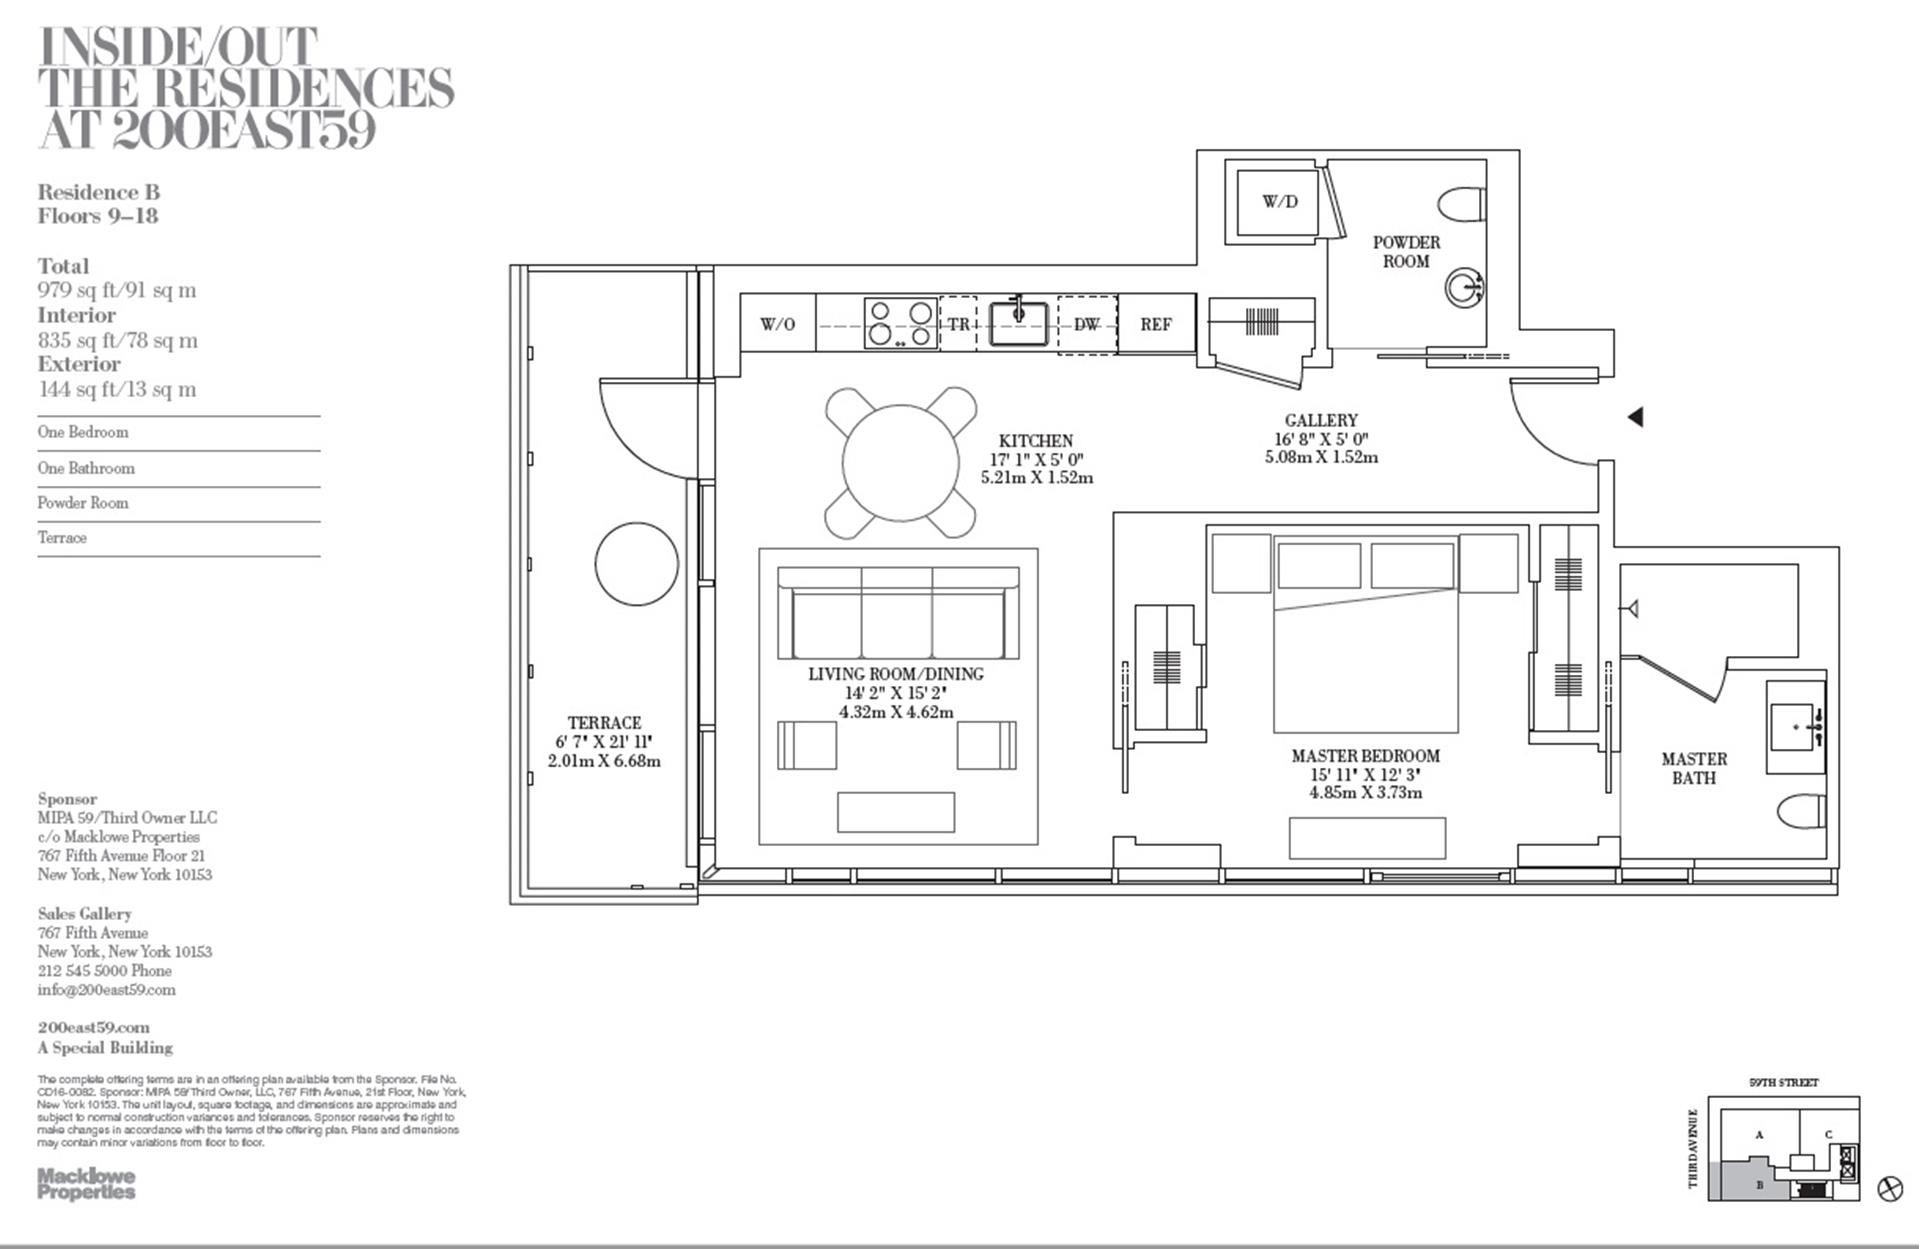 Floor plan of 200 East 59th St, 12B - Midtown, New York